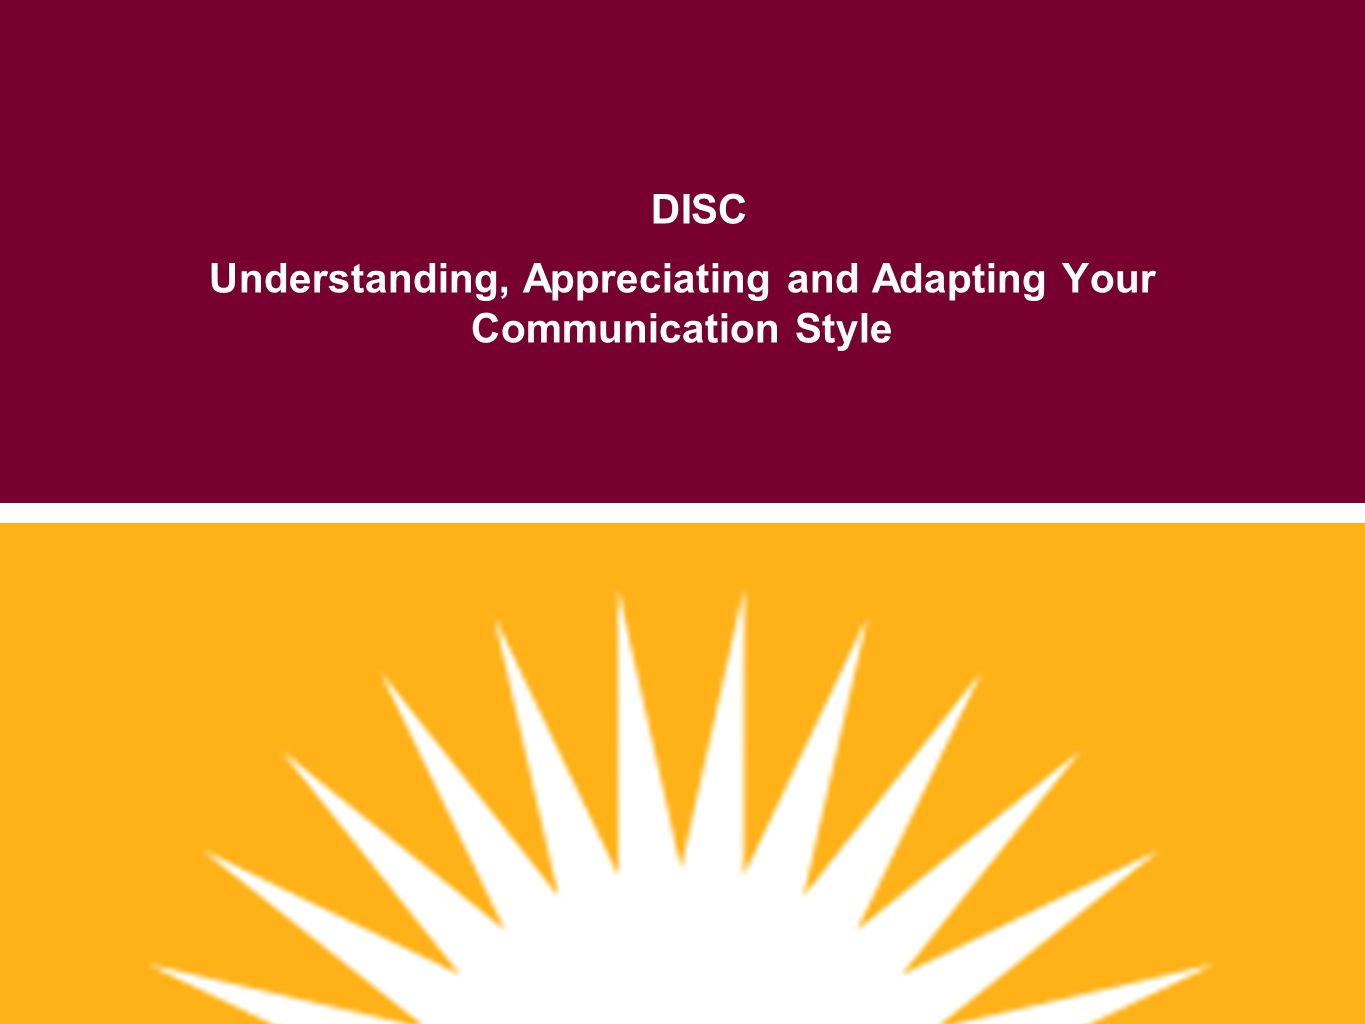 DISC Understanding, Appreciating and Adapting Your Communication Style